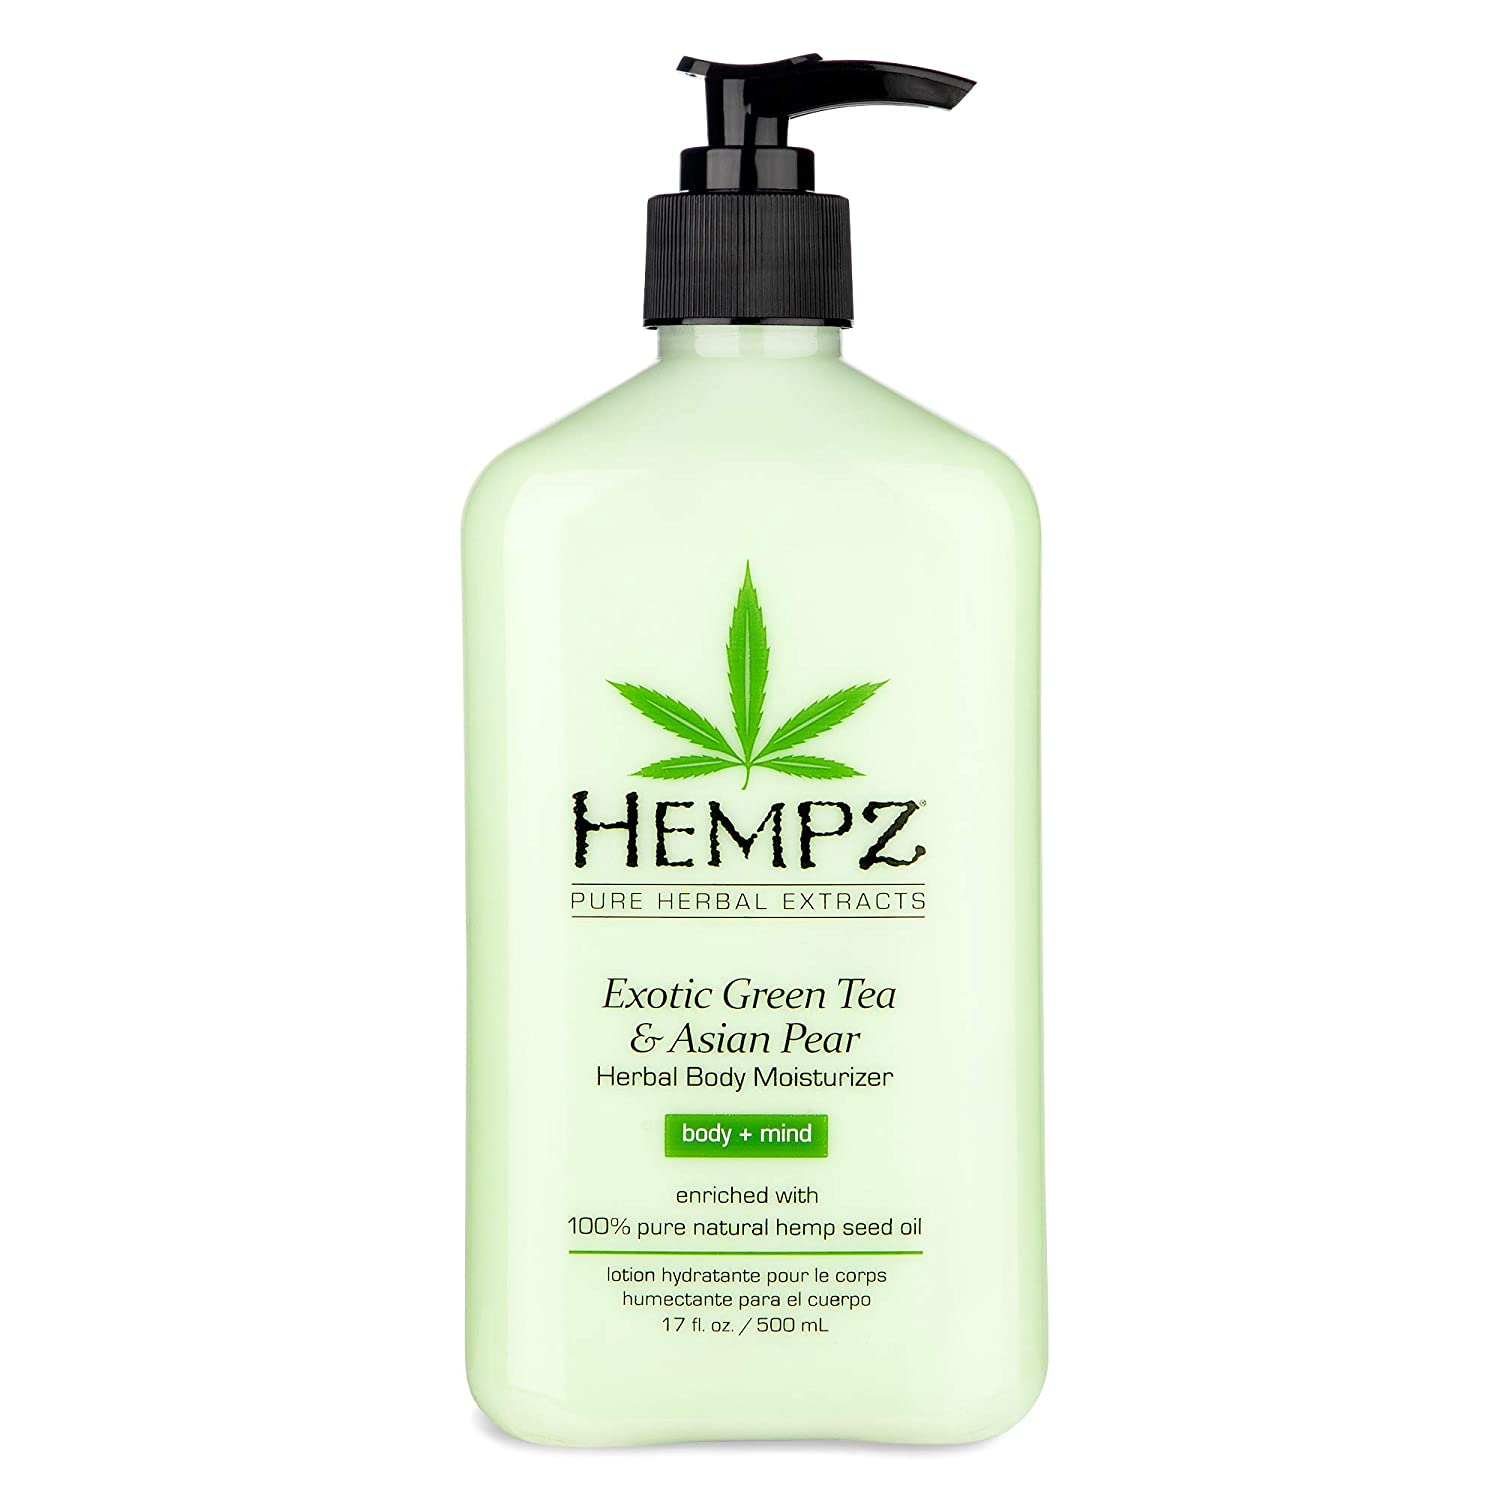 Exotic, Natural Herbal Body Moisturizer with Pure Hemp Seed Oil